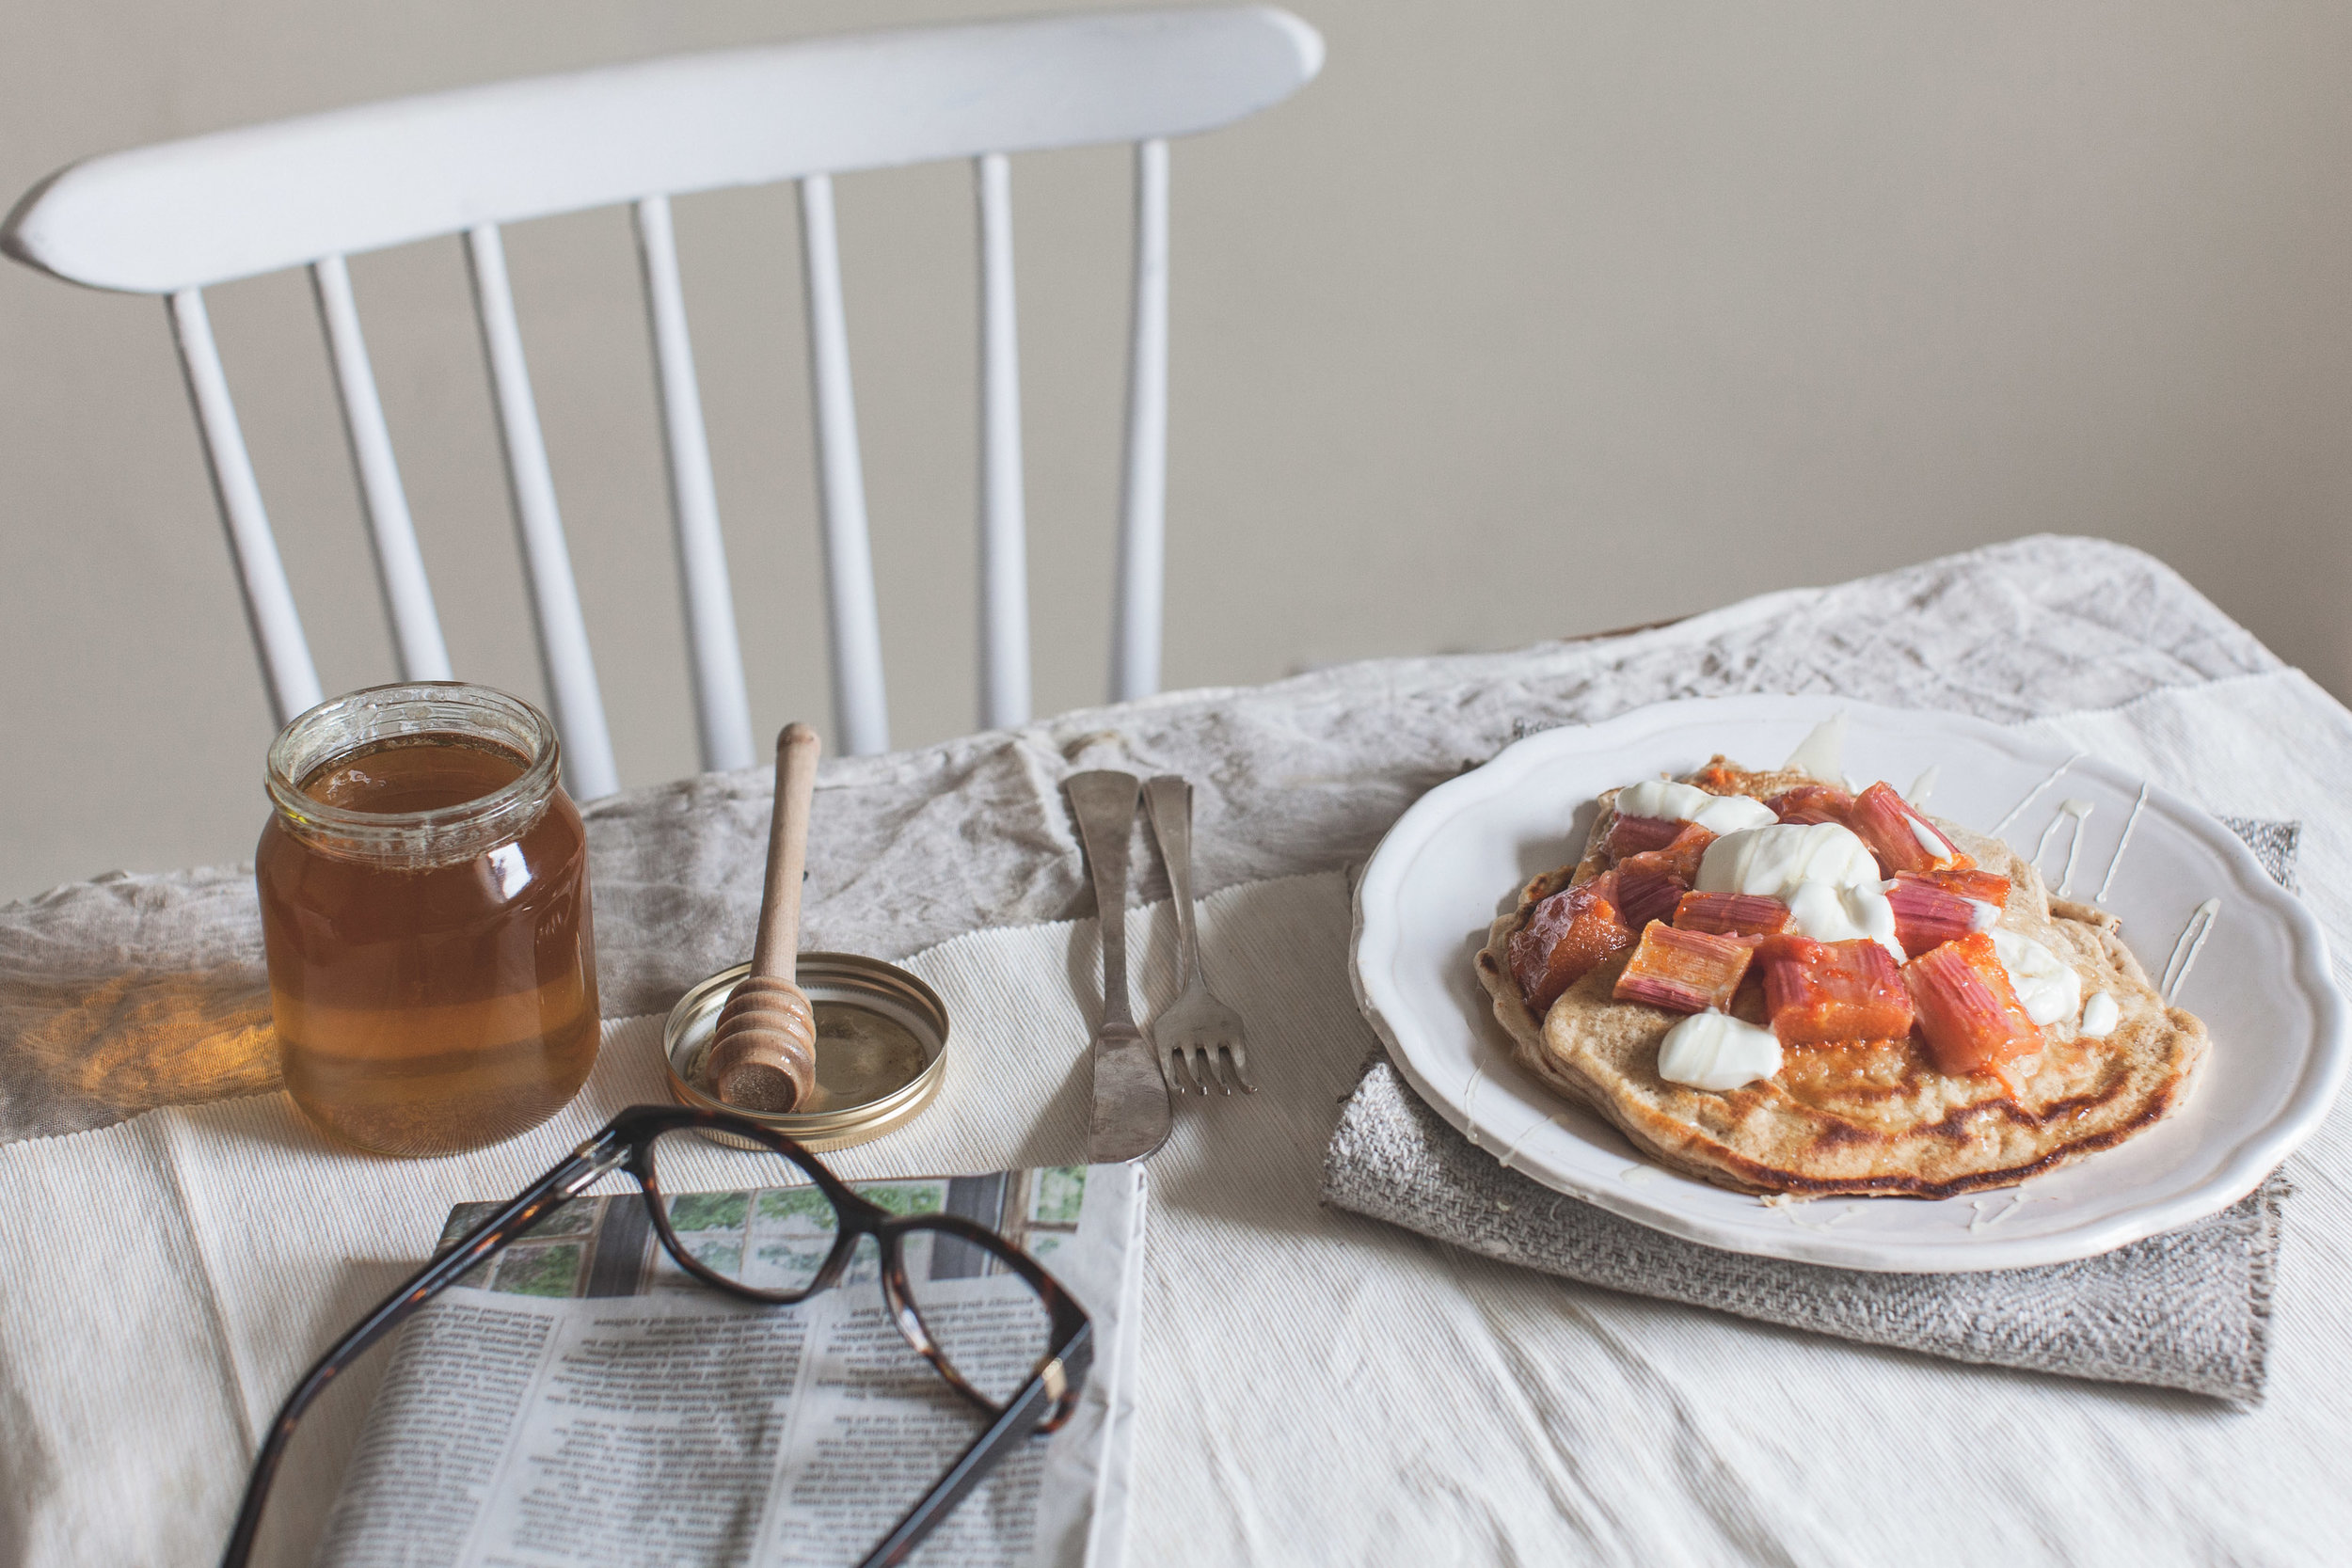 American pancakes with baked rhubarb. Retreat // Food and lifestyle blog based in Sussex. Photography by Emma Gutteridge.